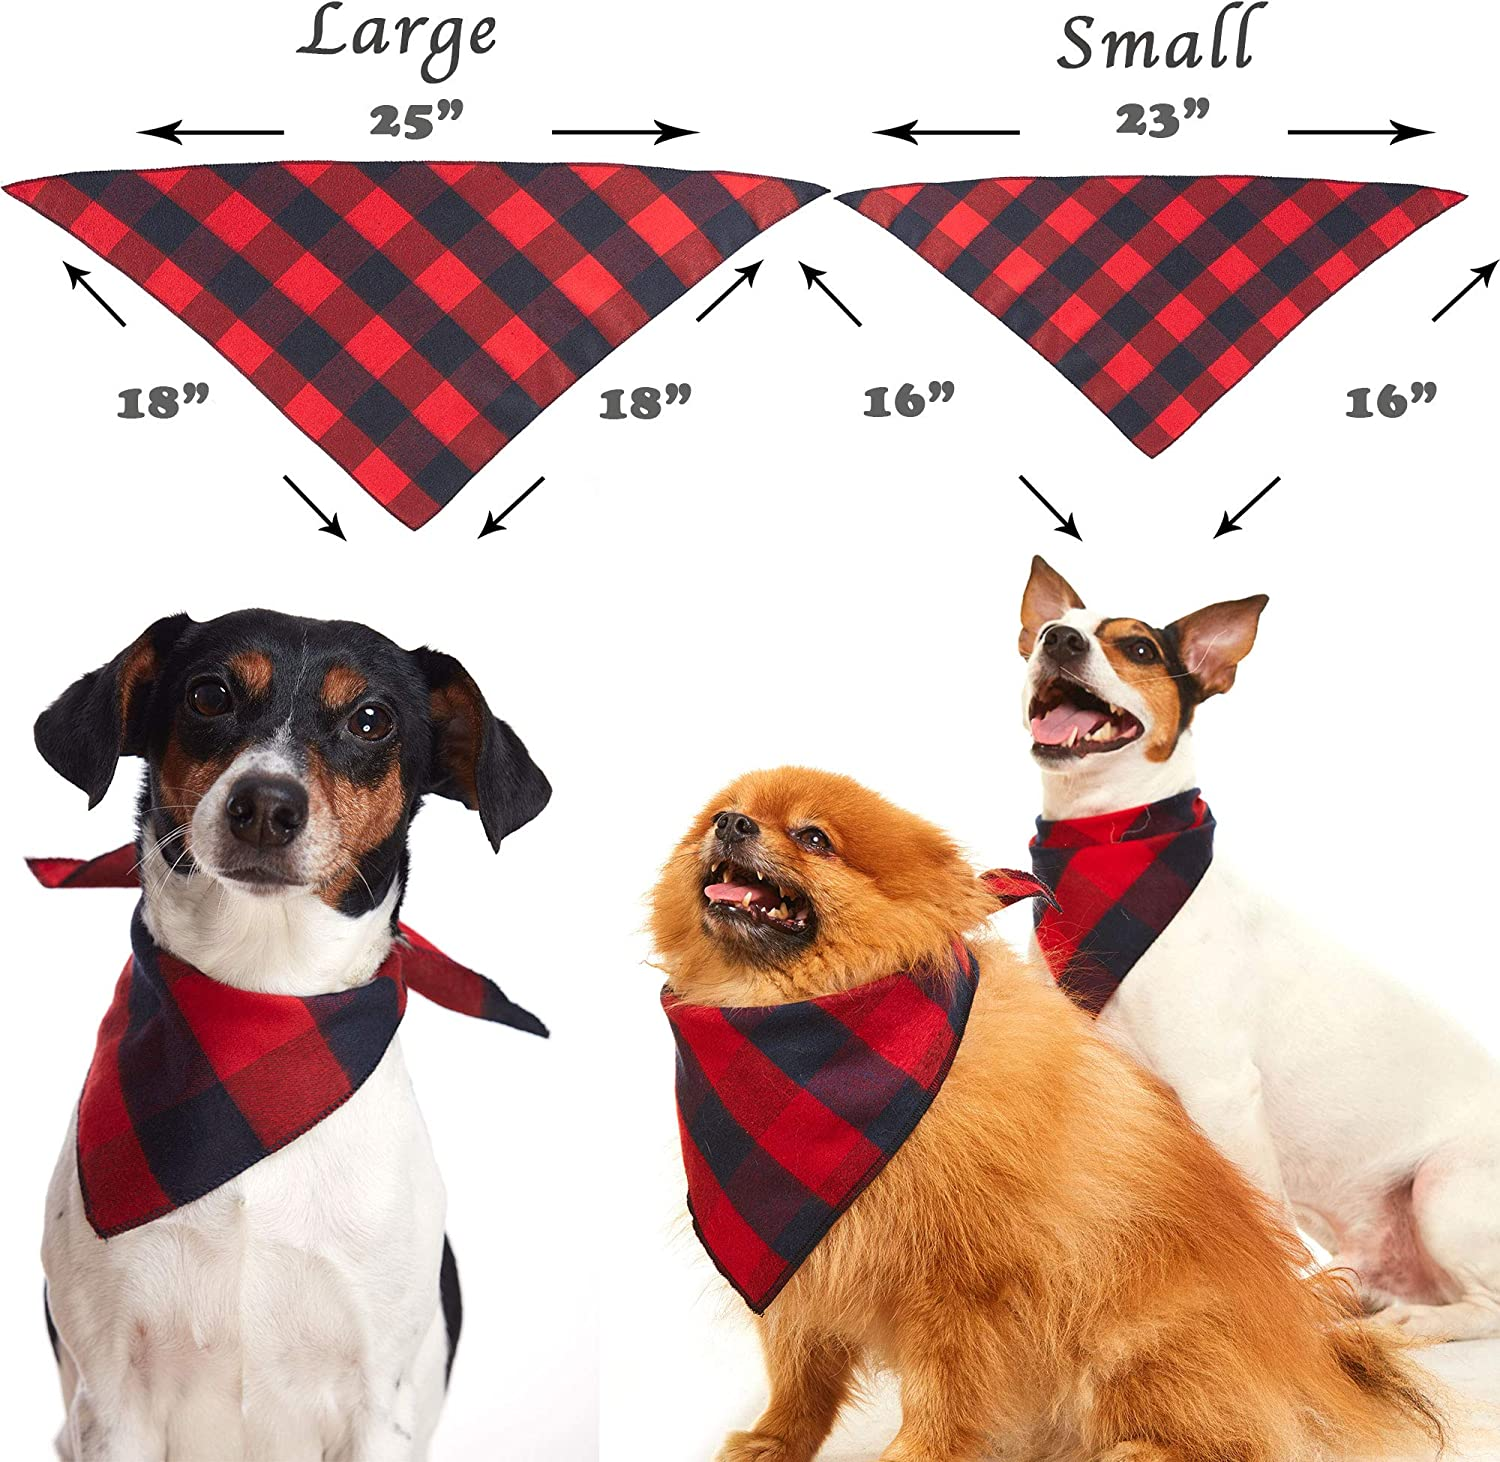 Odi Style Buffalo Plaid Dog Bandana 4 Pack Red Green Blue and Navy Blue Cotton Bandanas Handkerchiefs Scarfs Triangle Bibs Accessories for Small Medium Large Dogs Puppies Pets Black and White